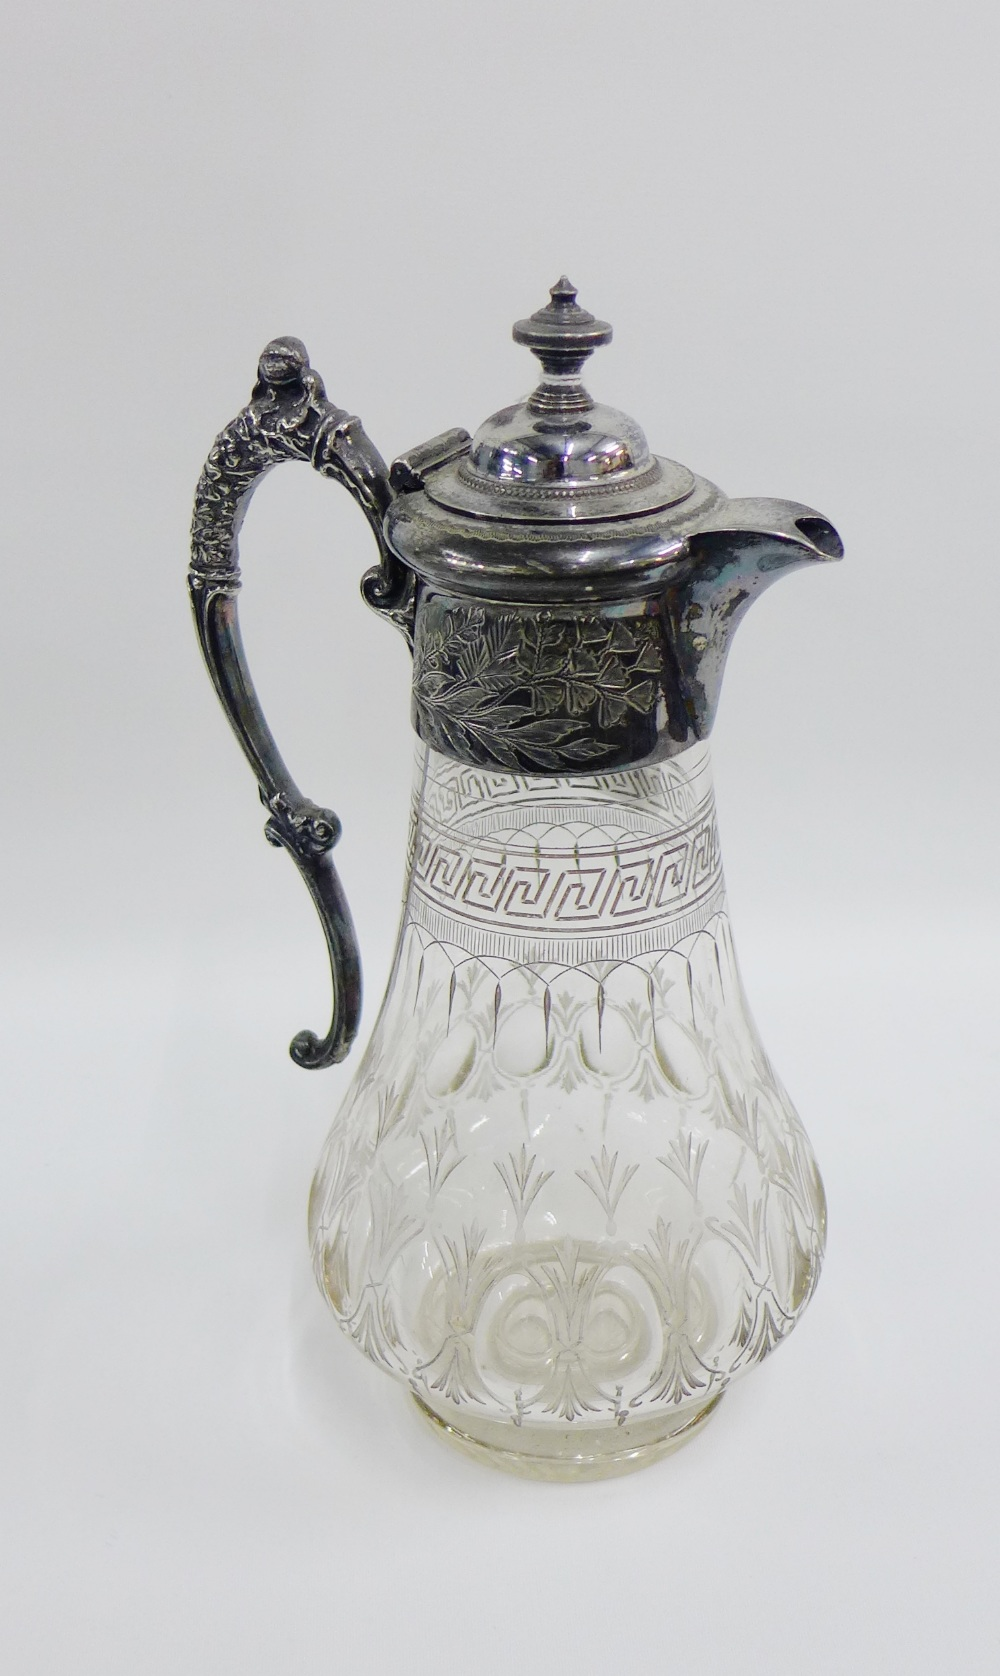 Lot 54 - Victorian Epns and etched glass claret jug, 28cm high